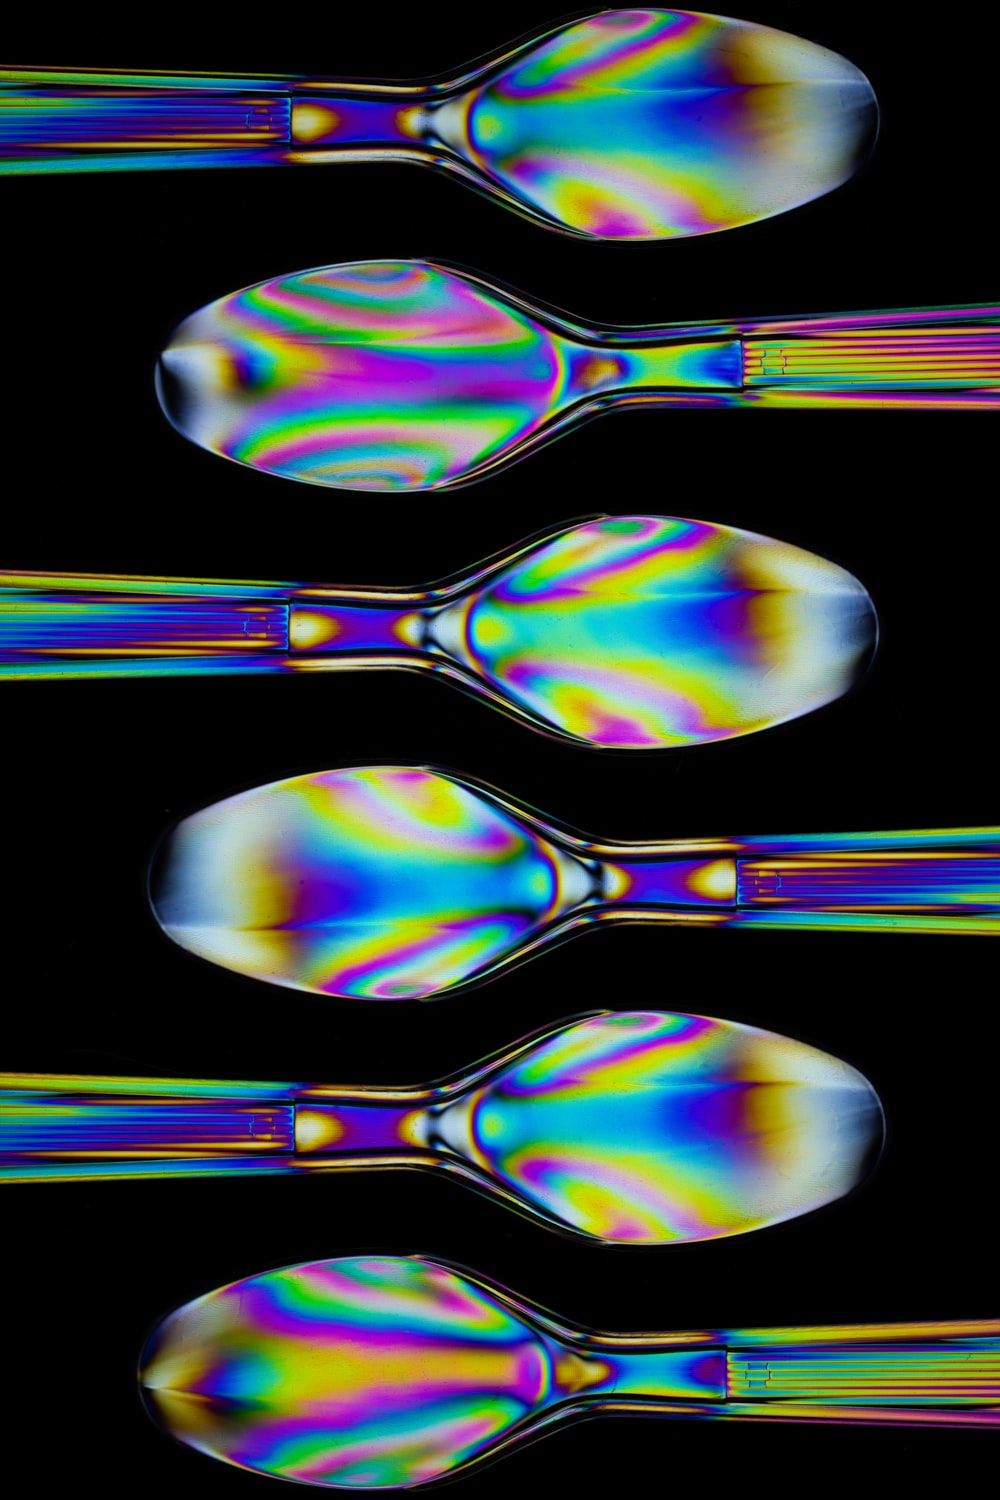 iridescent spoon artwork